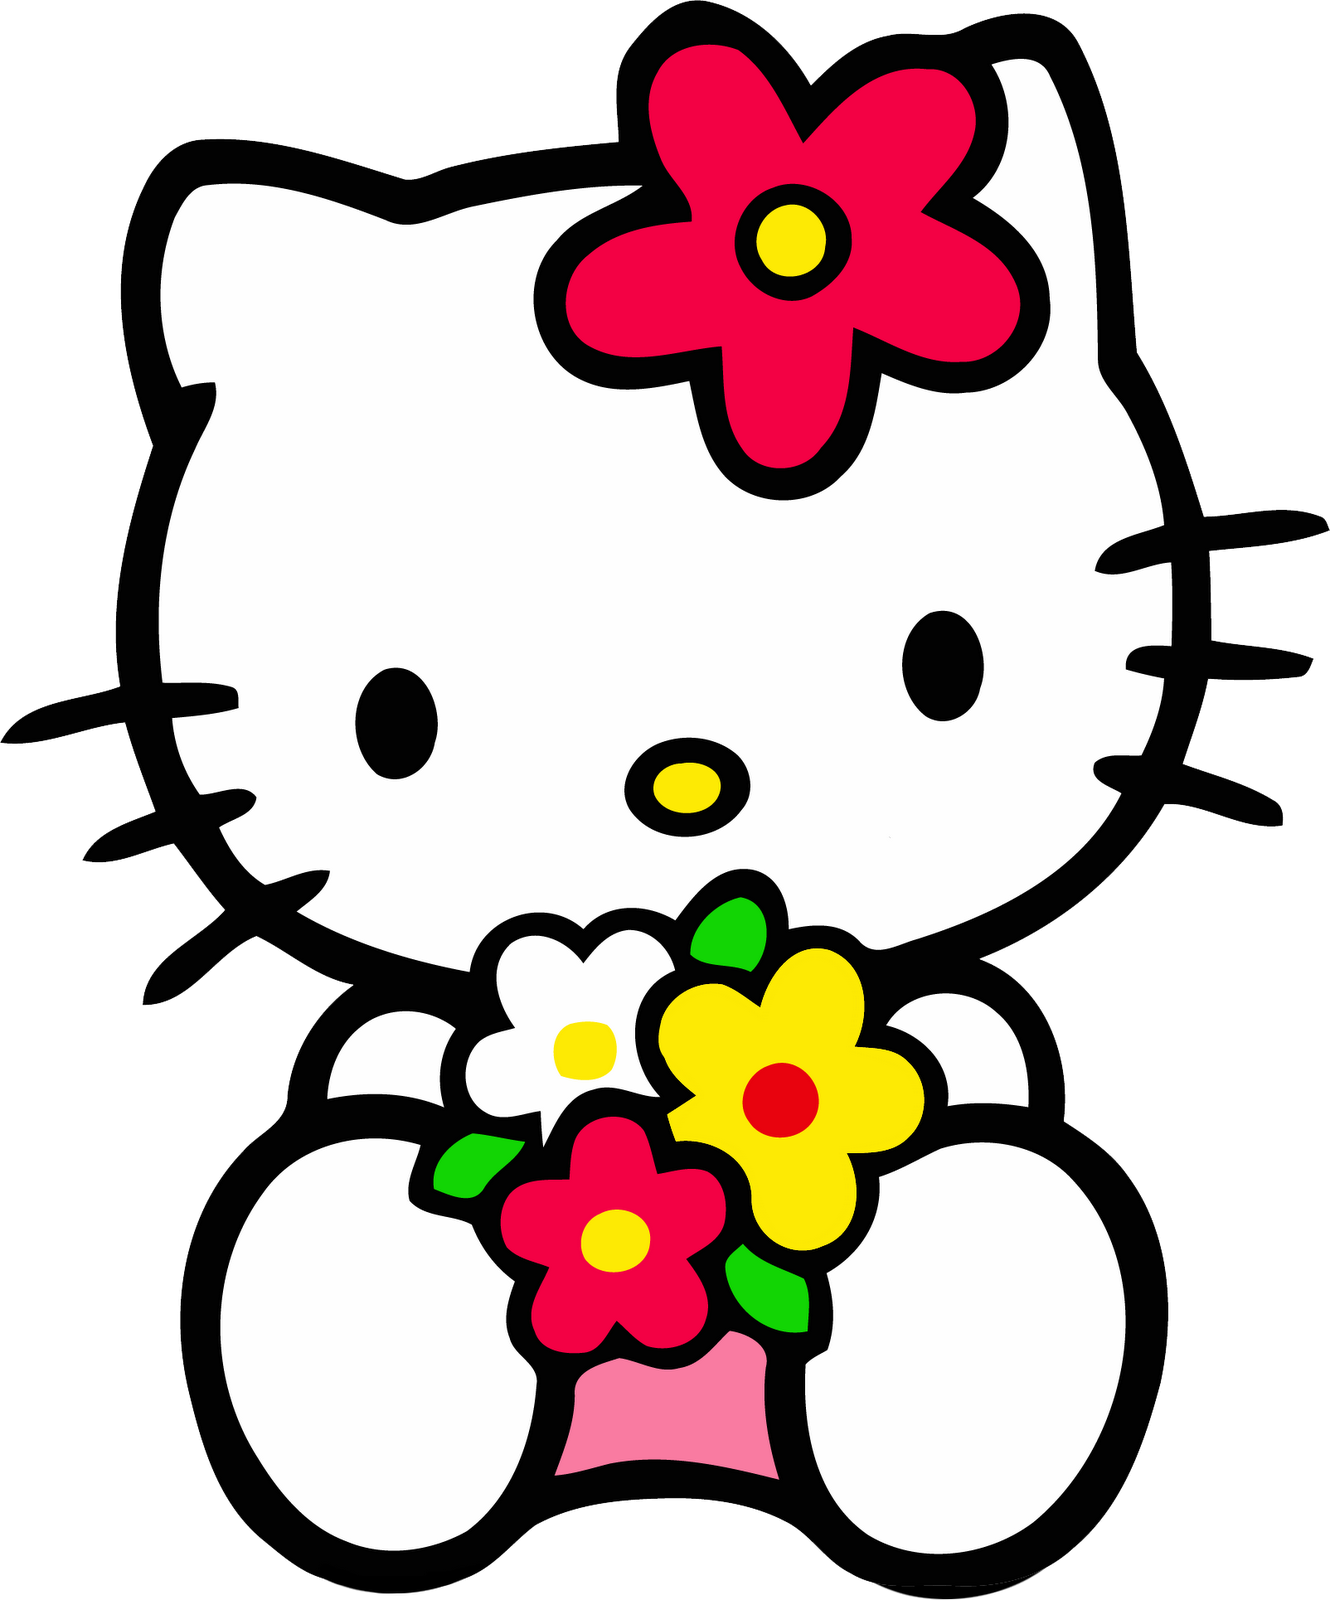 Inkspace svg hello kitty. Imageslist com images part